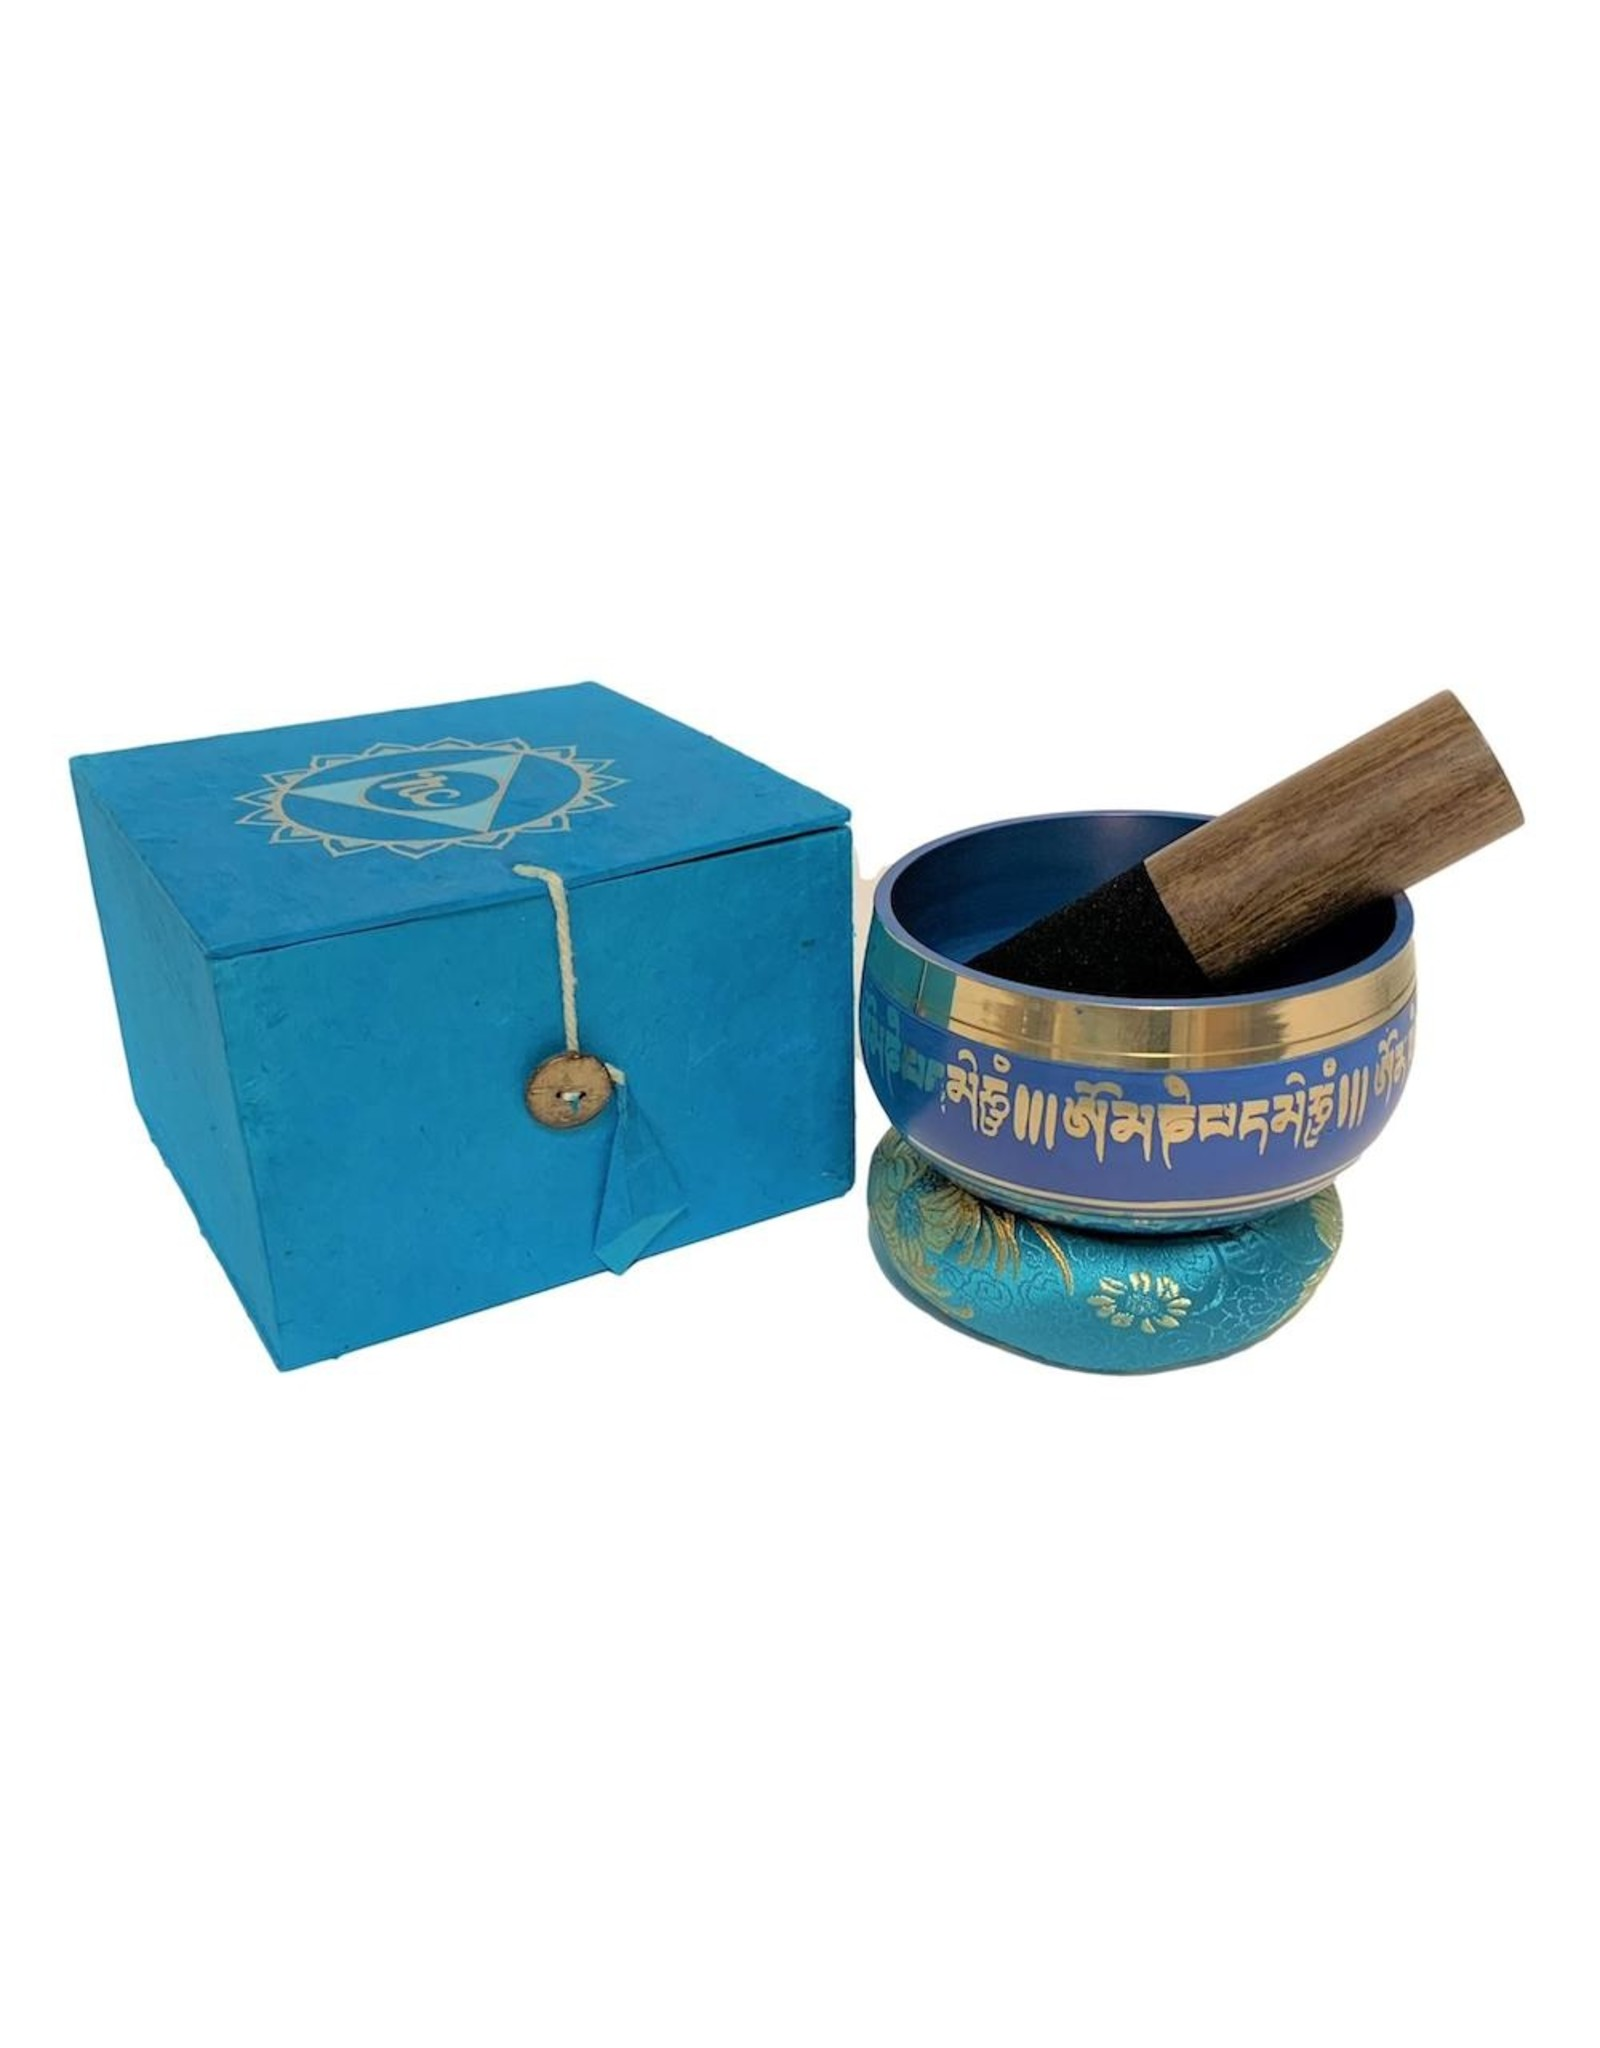 Dakini singing bowl set Lotus blue